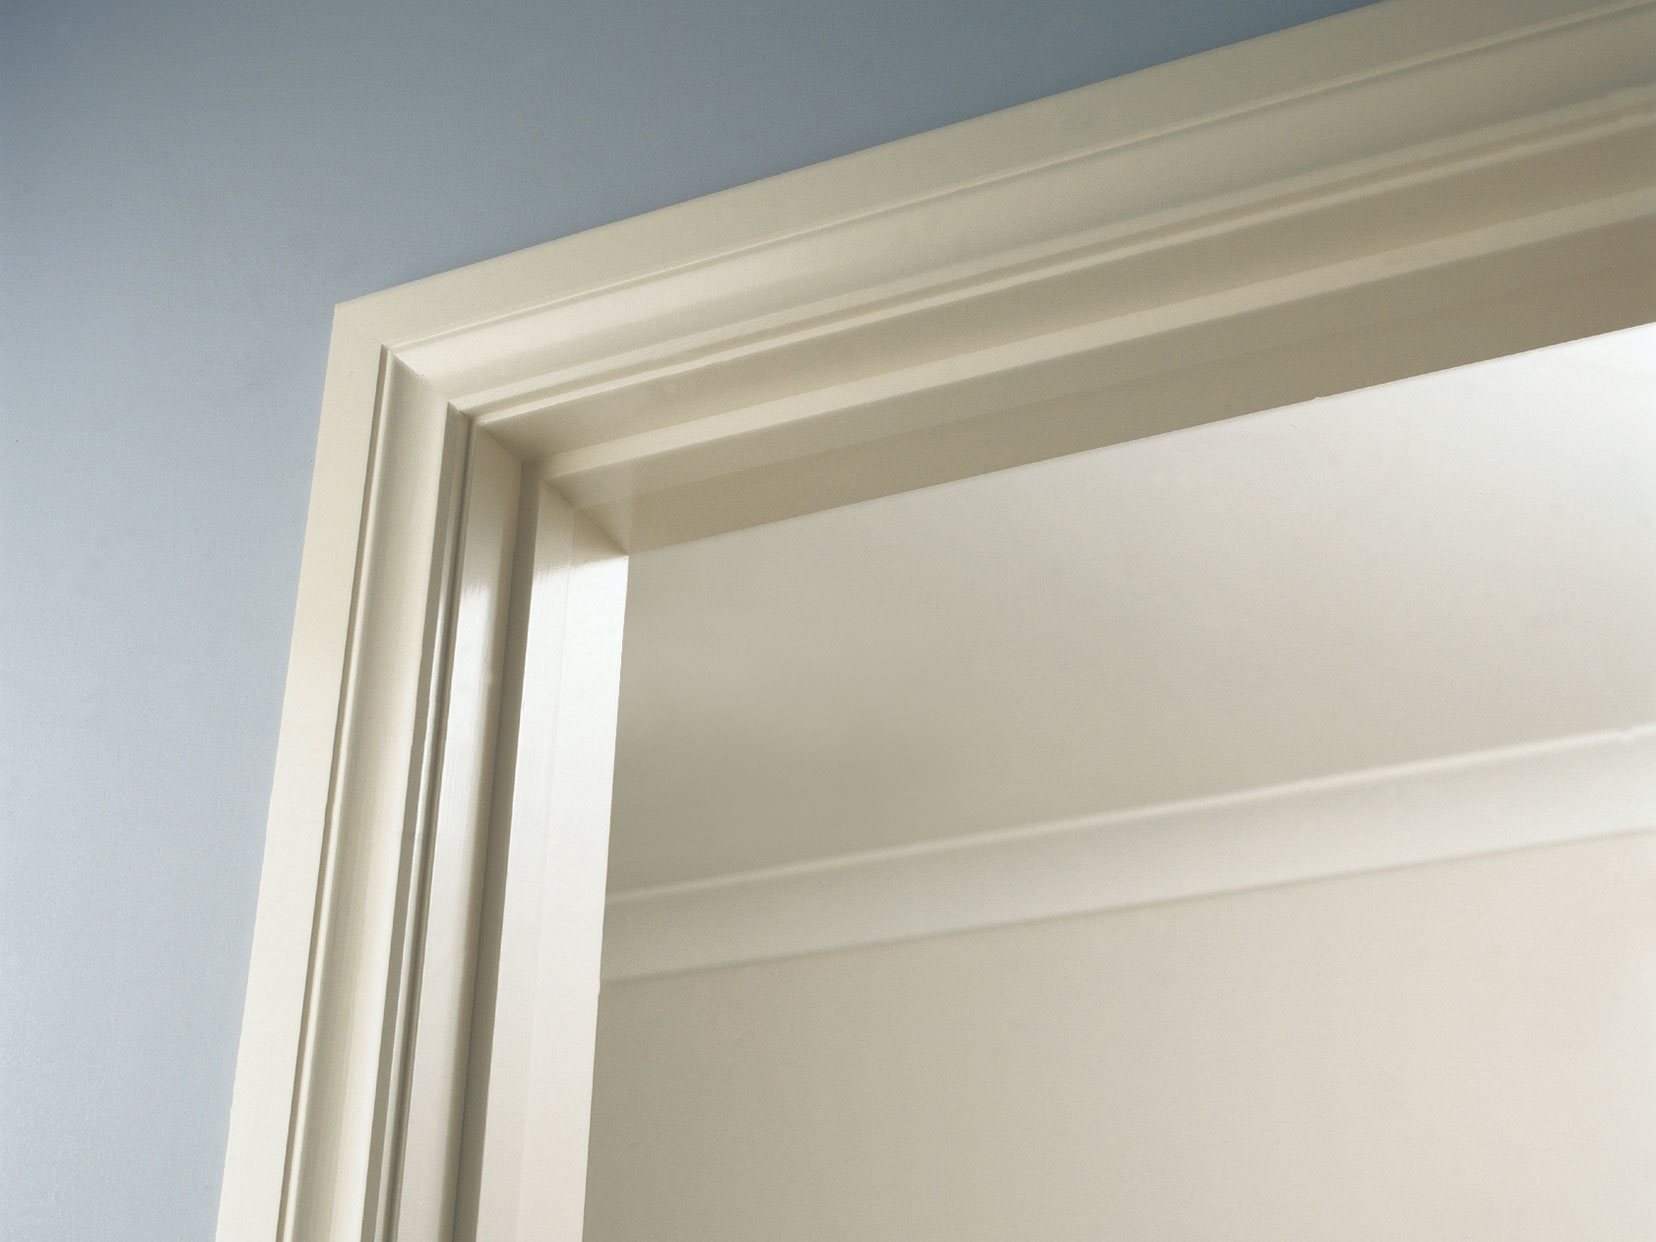 Mouldings on Design Modern Interior Doors